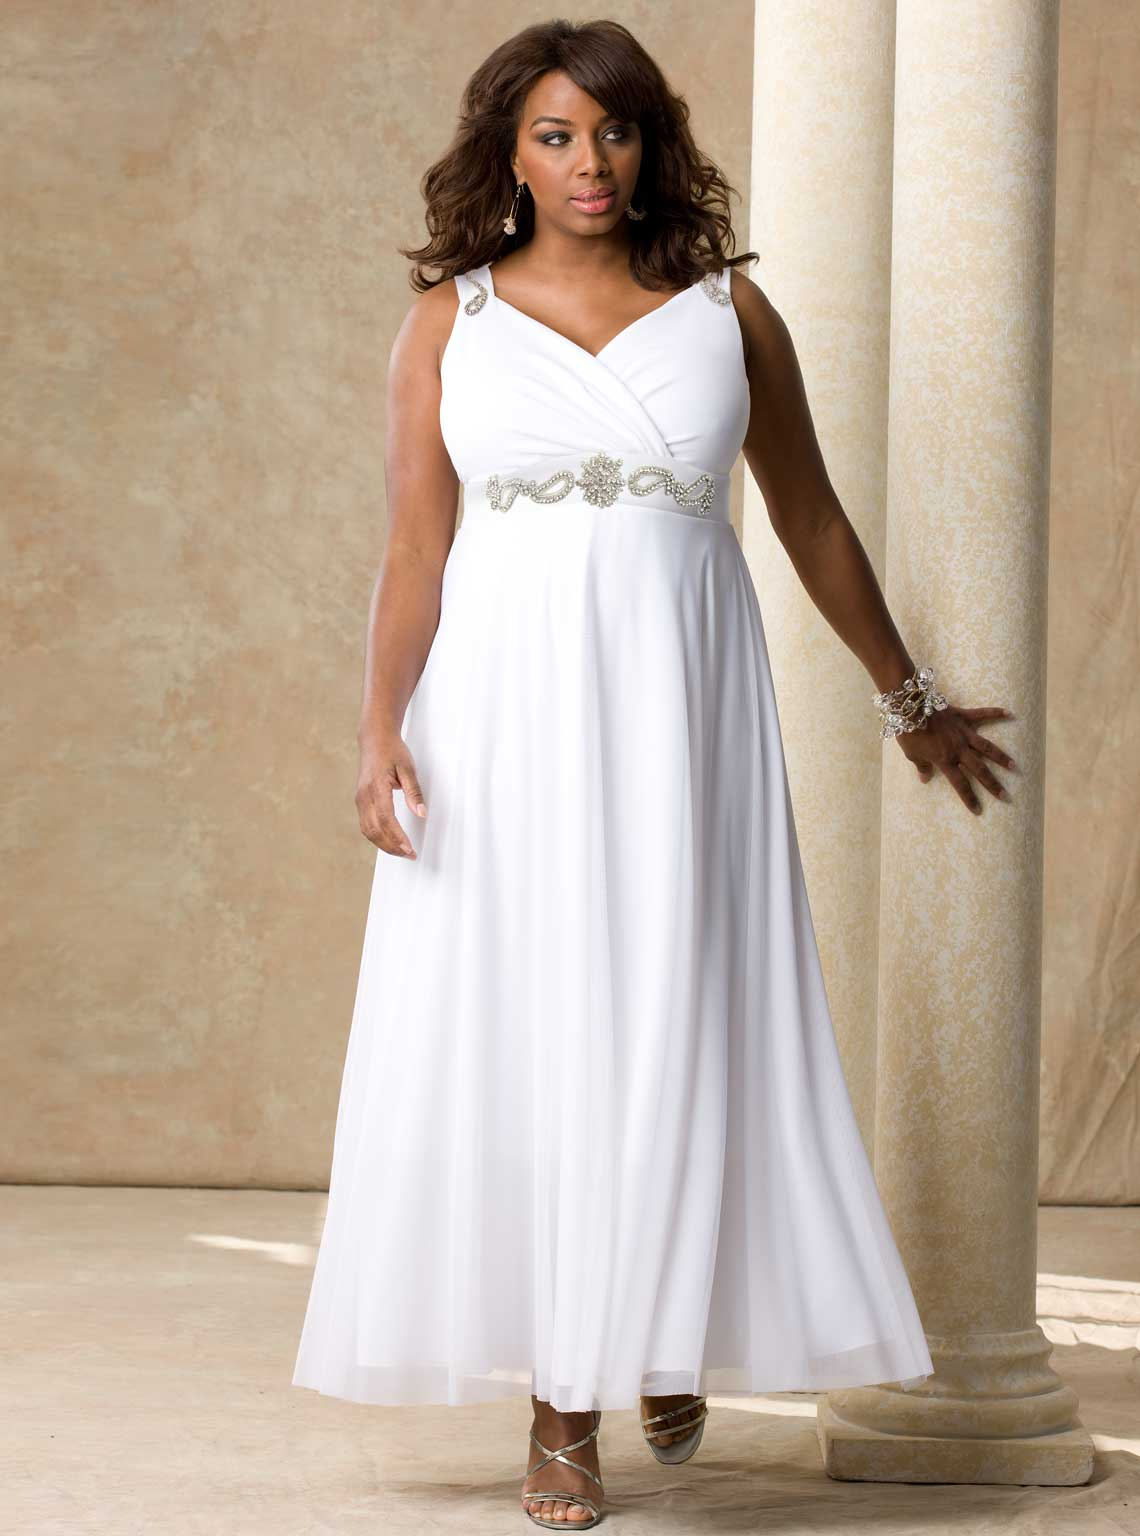 best wedding ideas searching for an affordable plus size With plus size wedding dresses